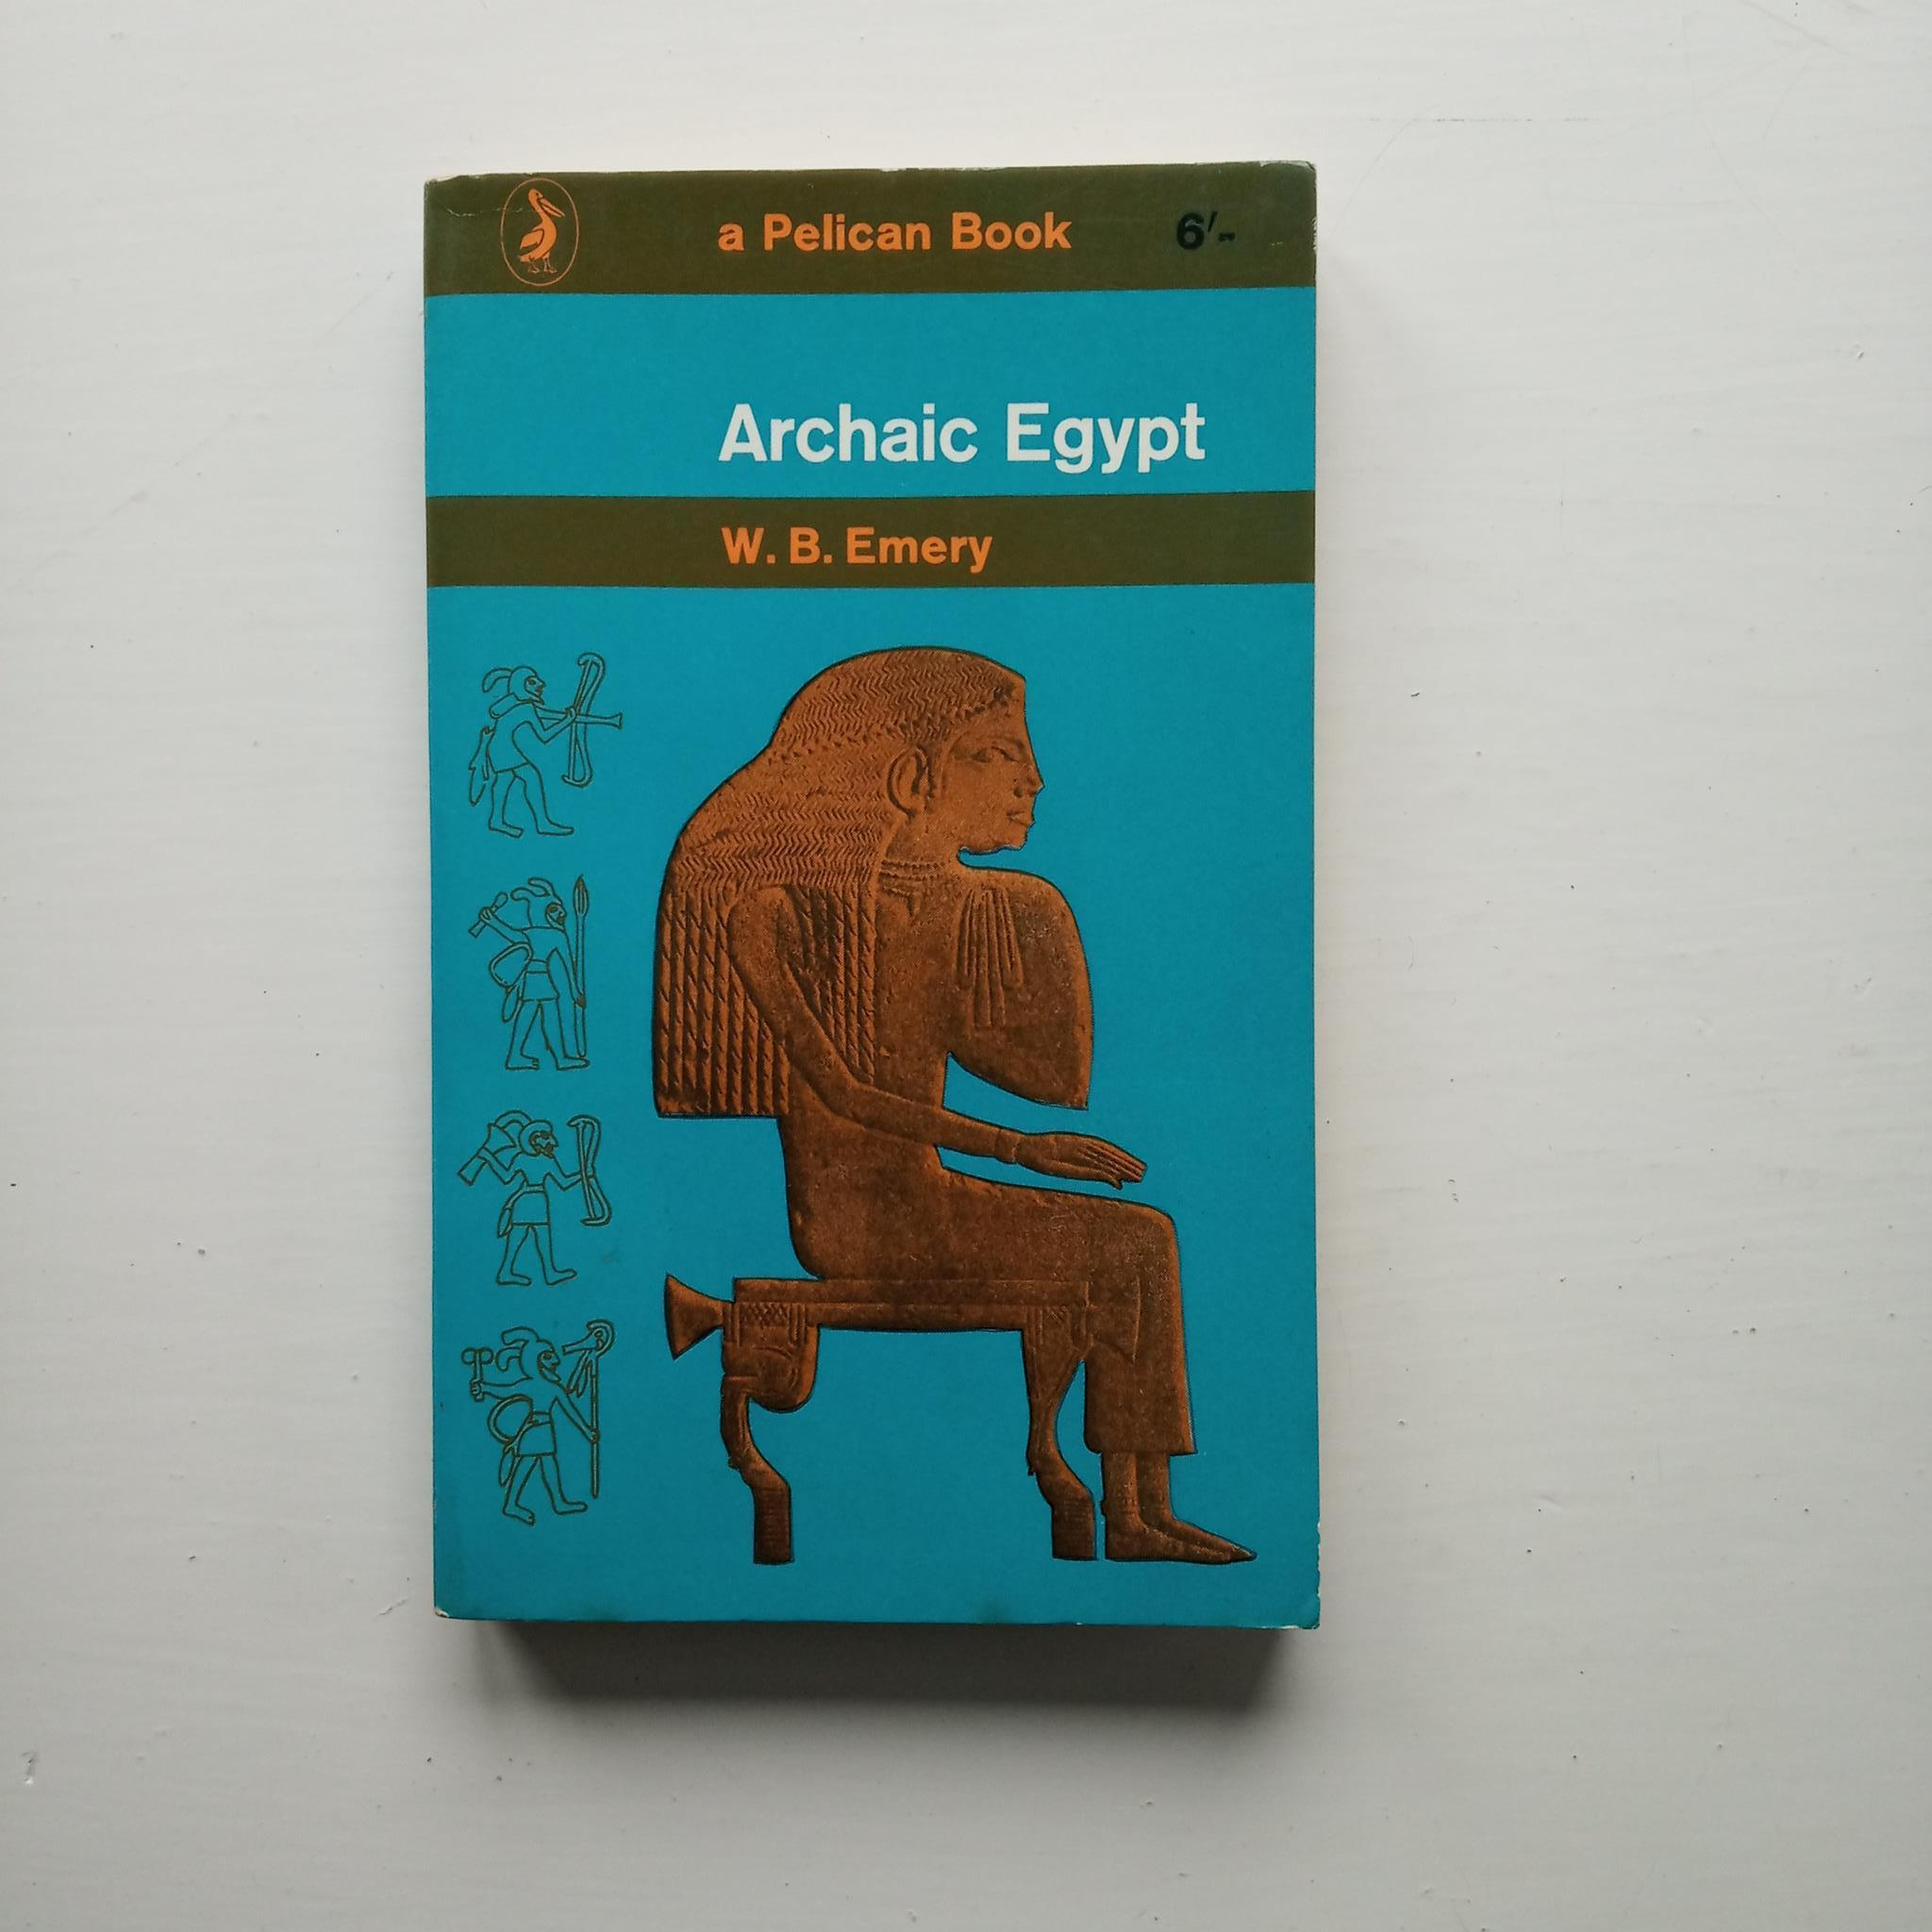 Archaic Egypt by W. B. Emery